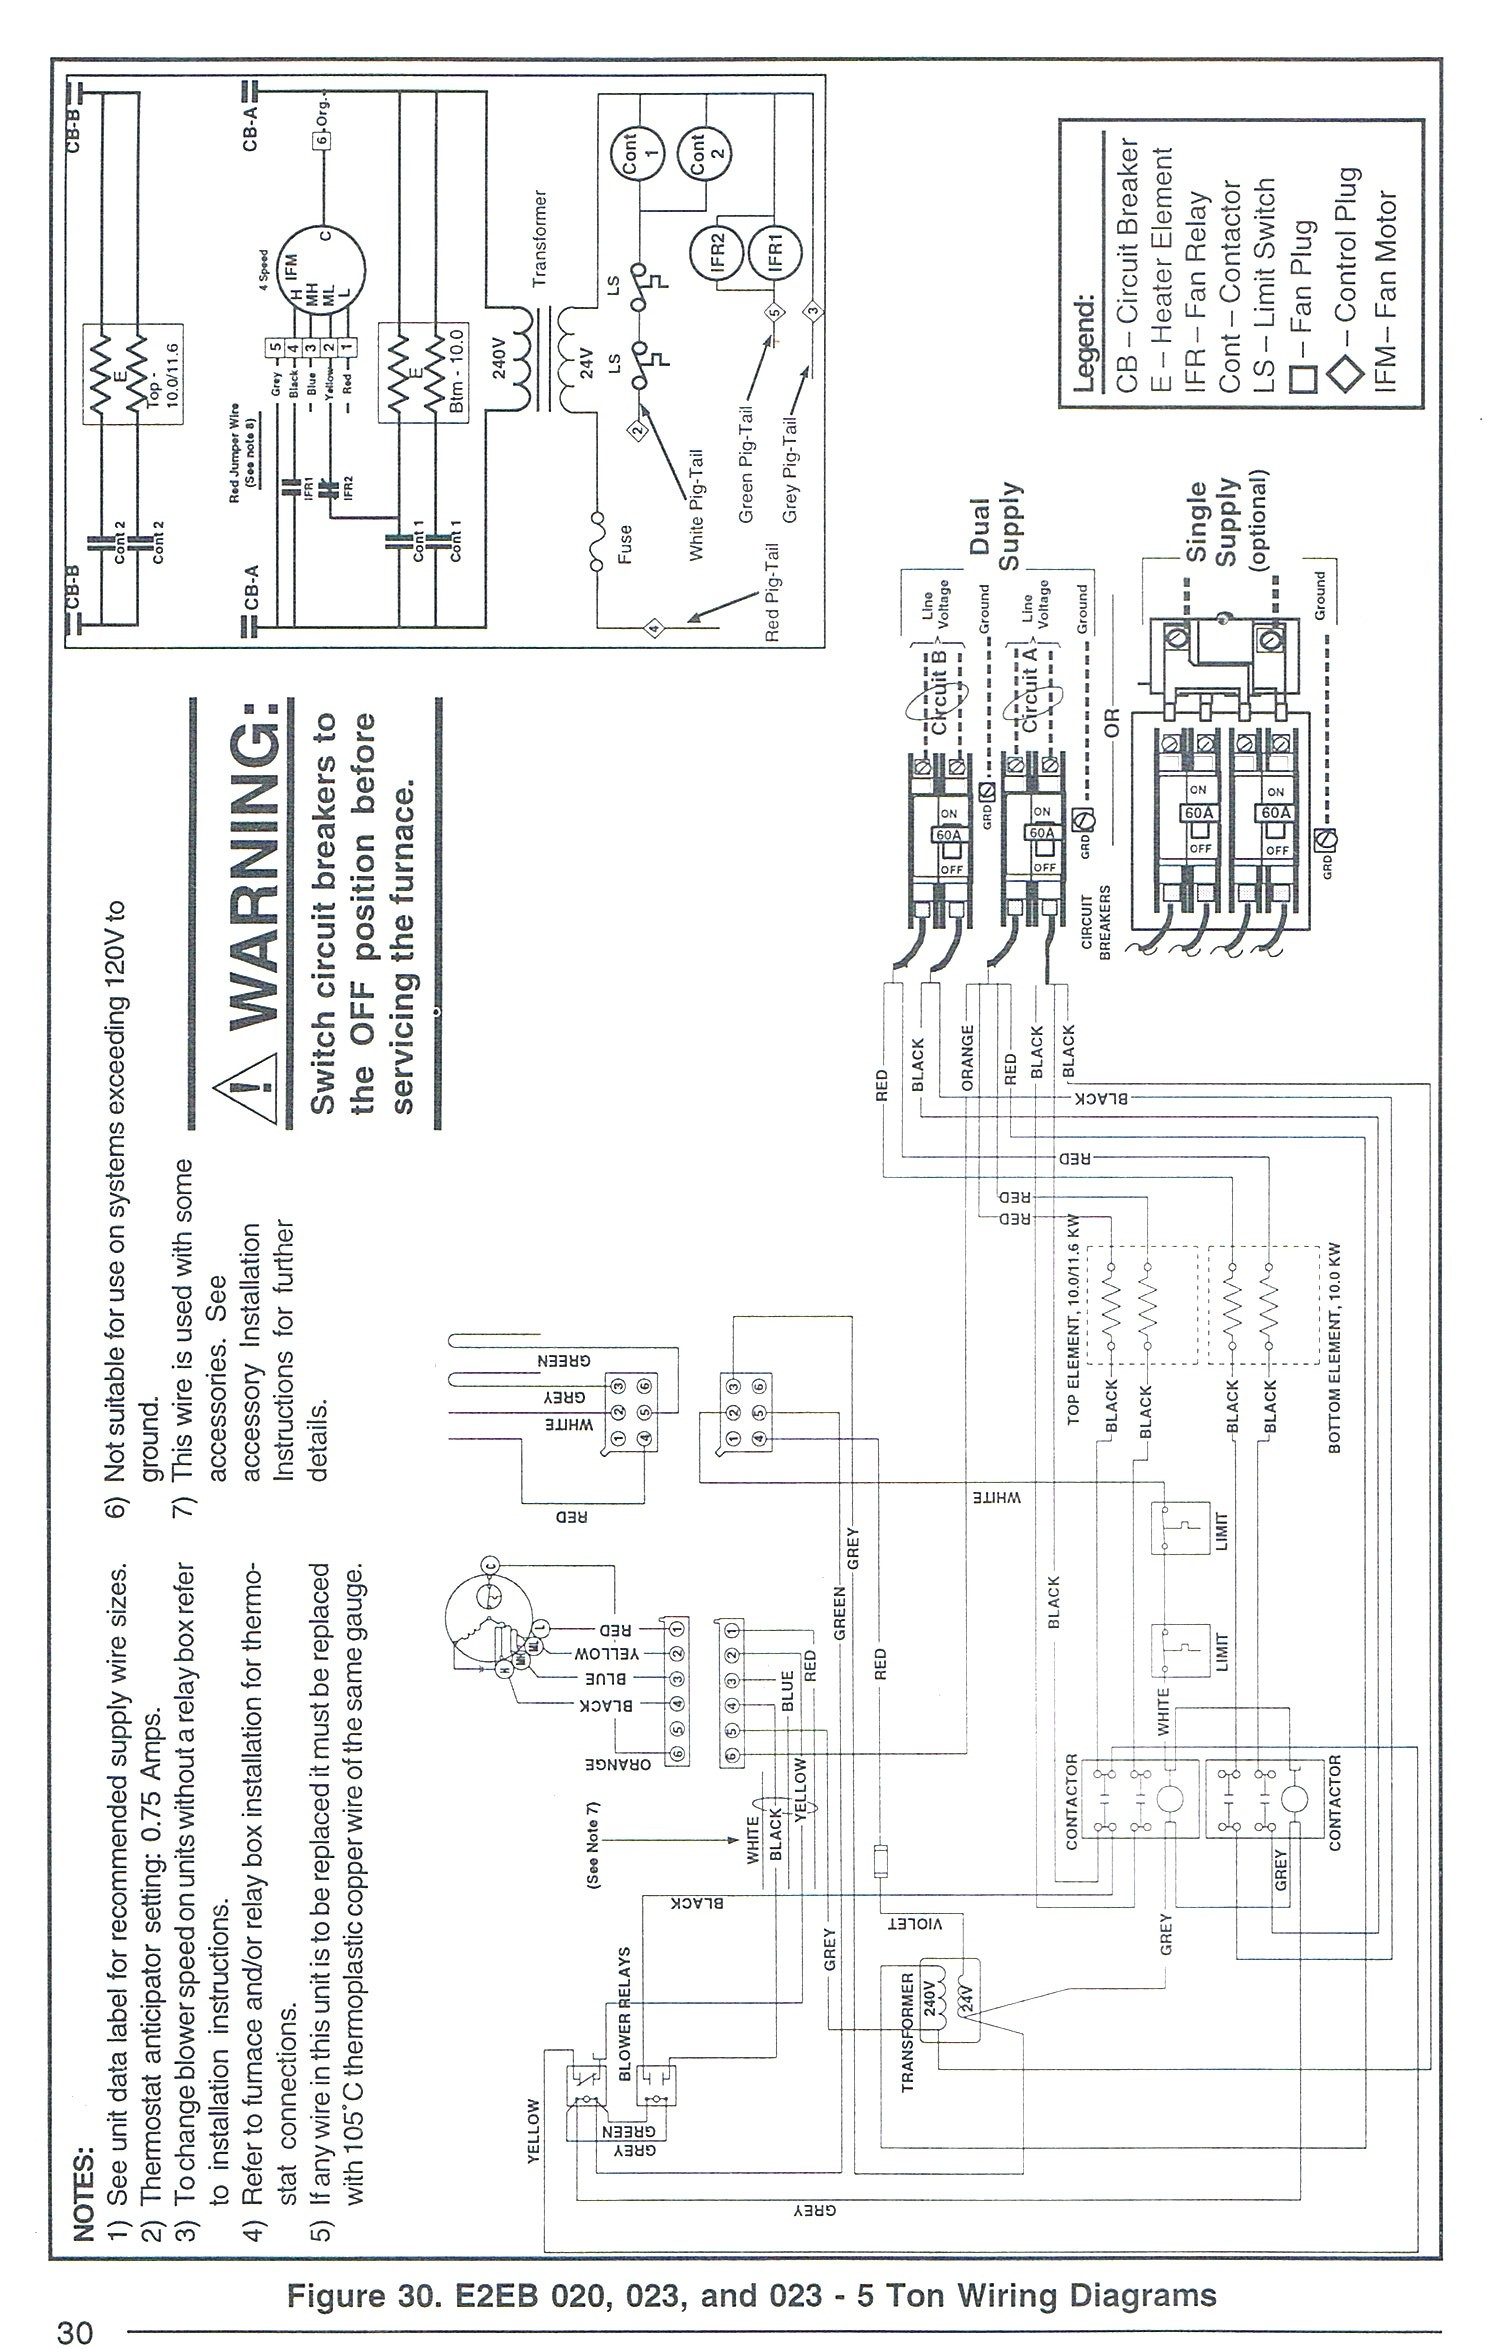 [DIAGRAM_38IS]  31AD7 Intertherm Wiring Diagram Model A | Wiring Resources | Nordyne Wiring Diagram |  | Wiring Resources